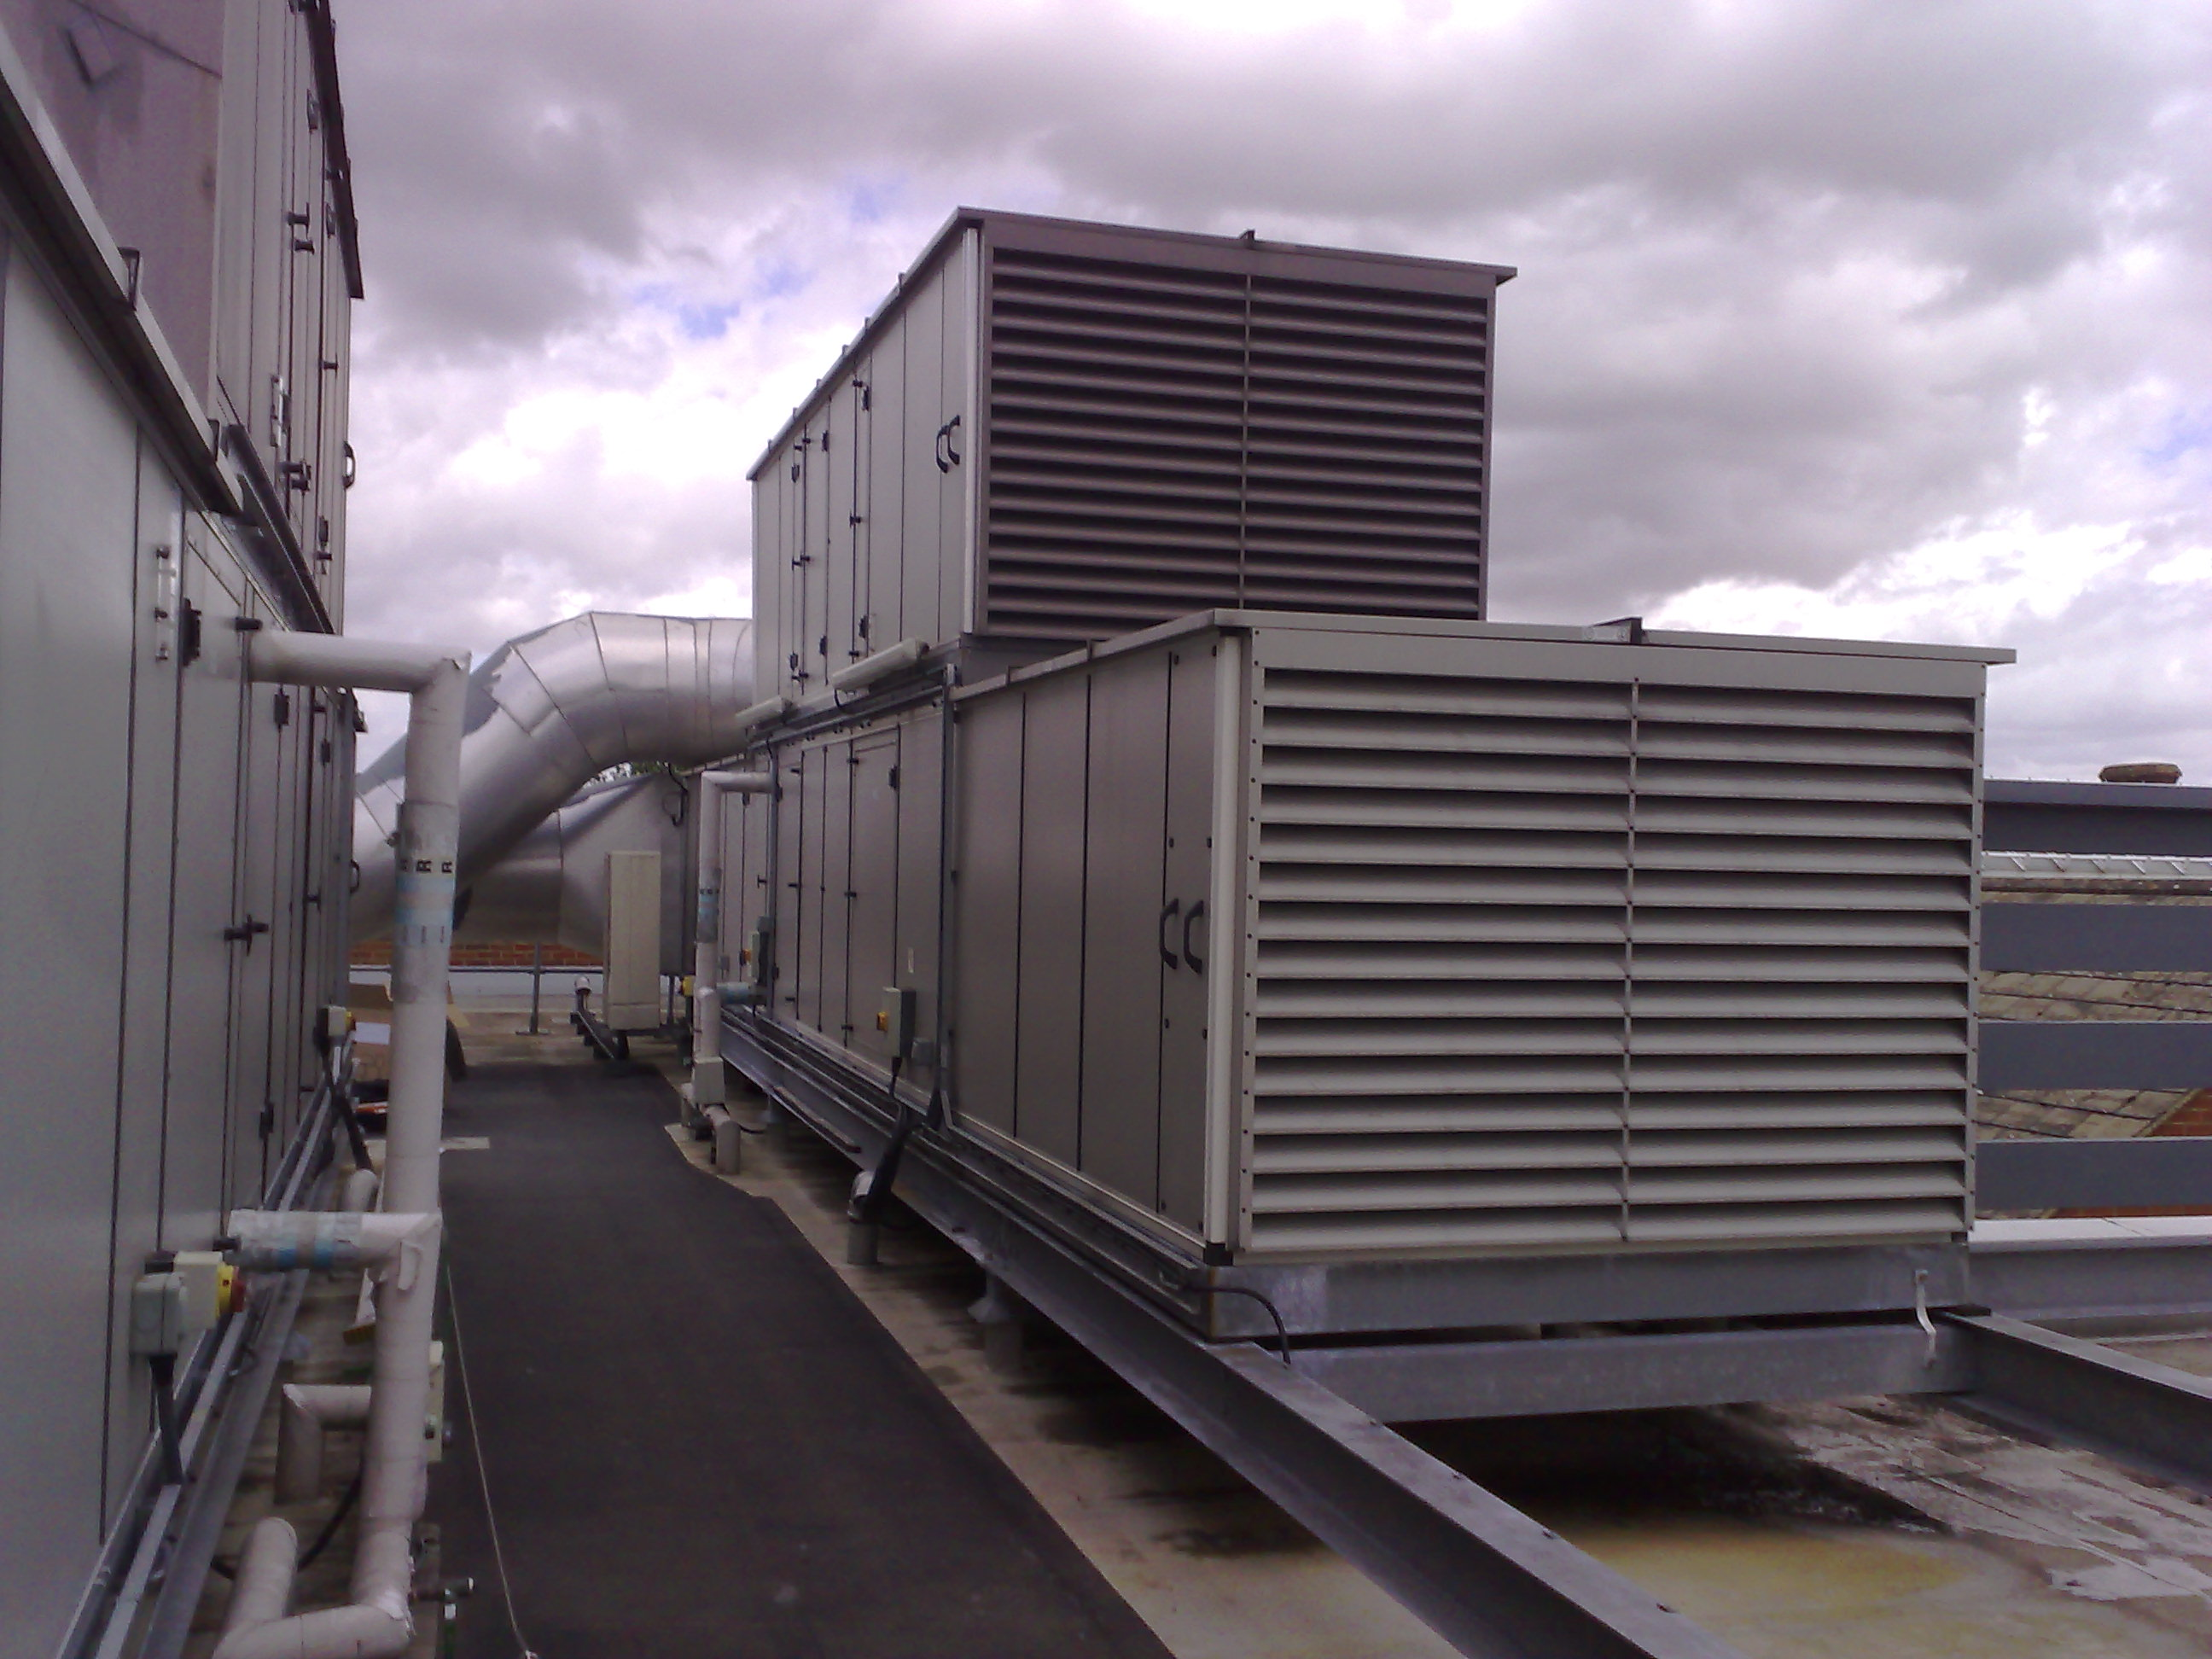 Air conditioning and refrigeration offer an installation and maintenance service